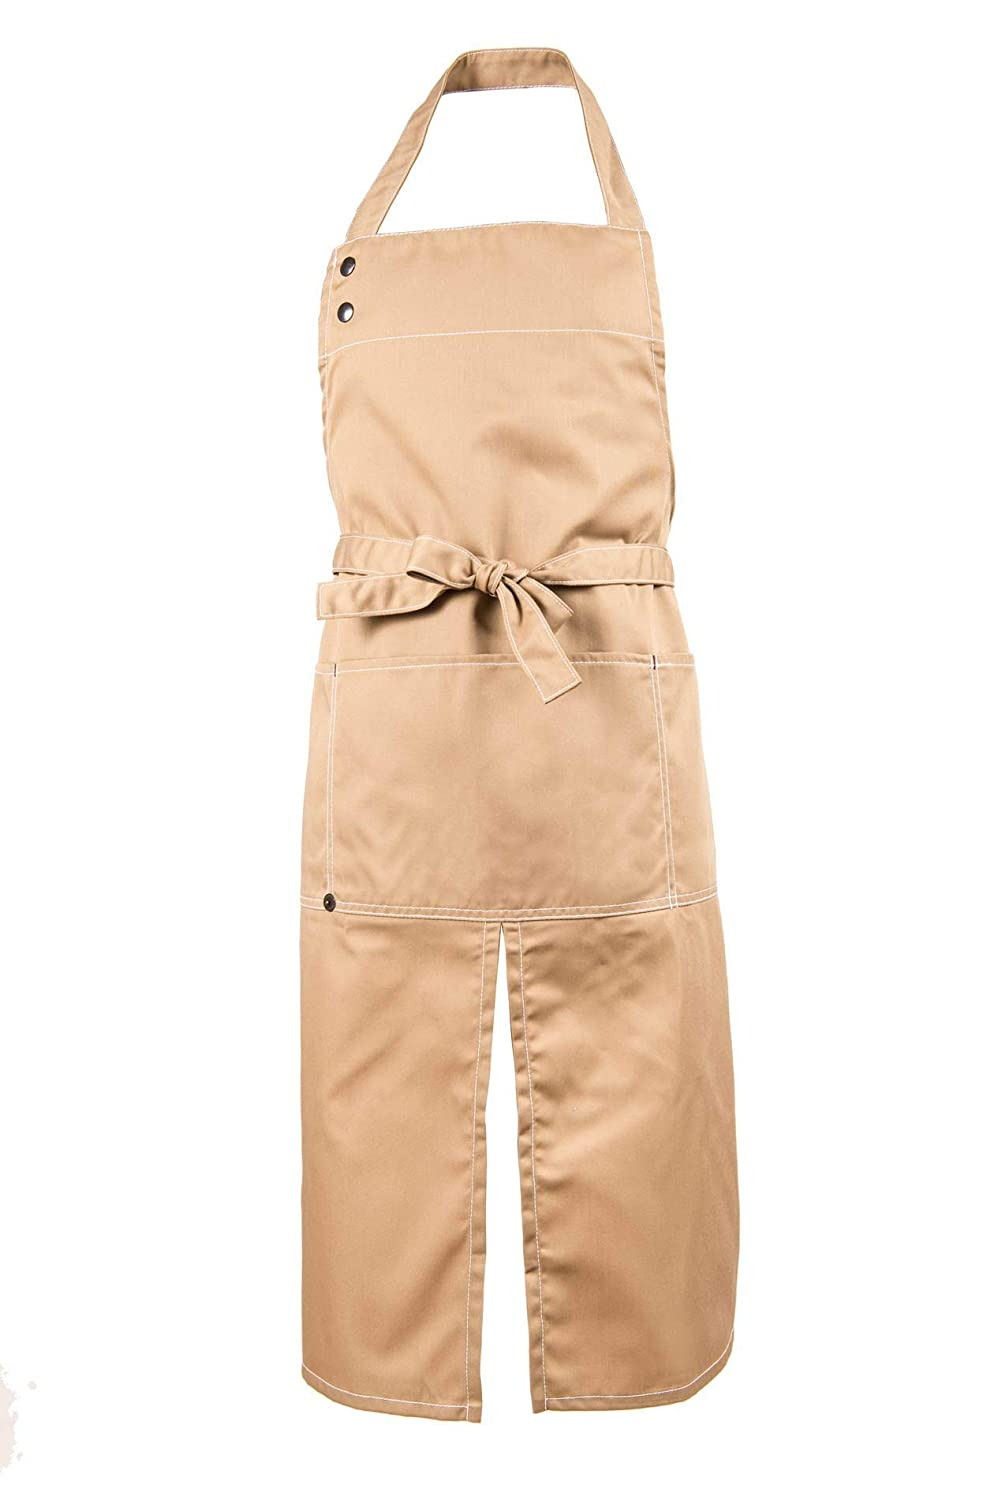 Beige Apron - We OFFer at cheap prices En Travaux Cours High order